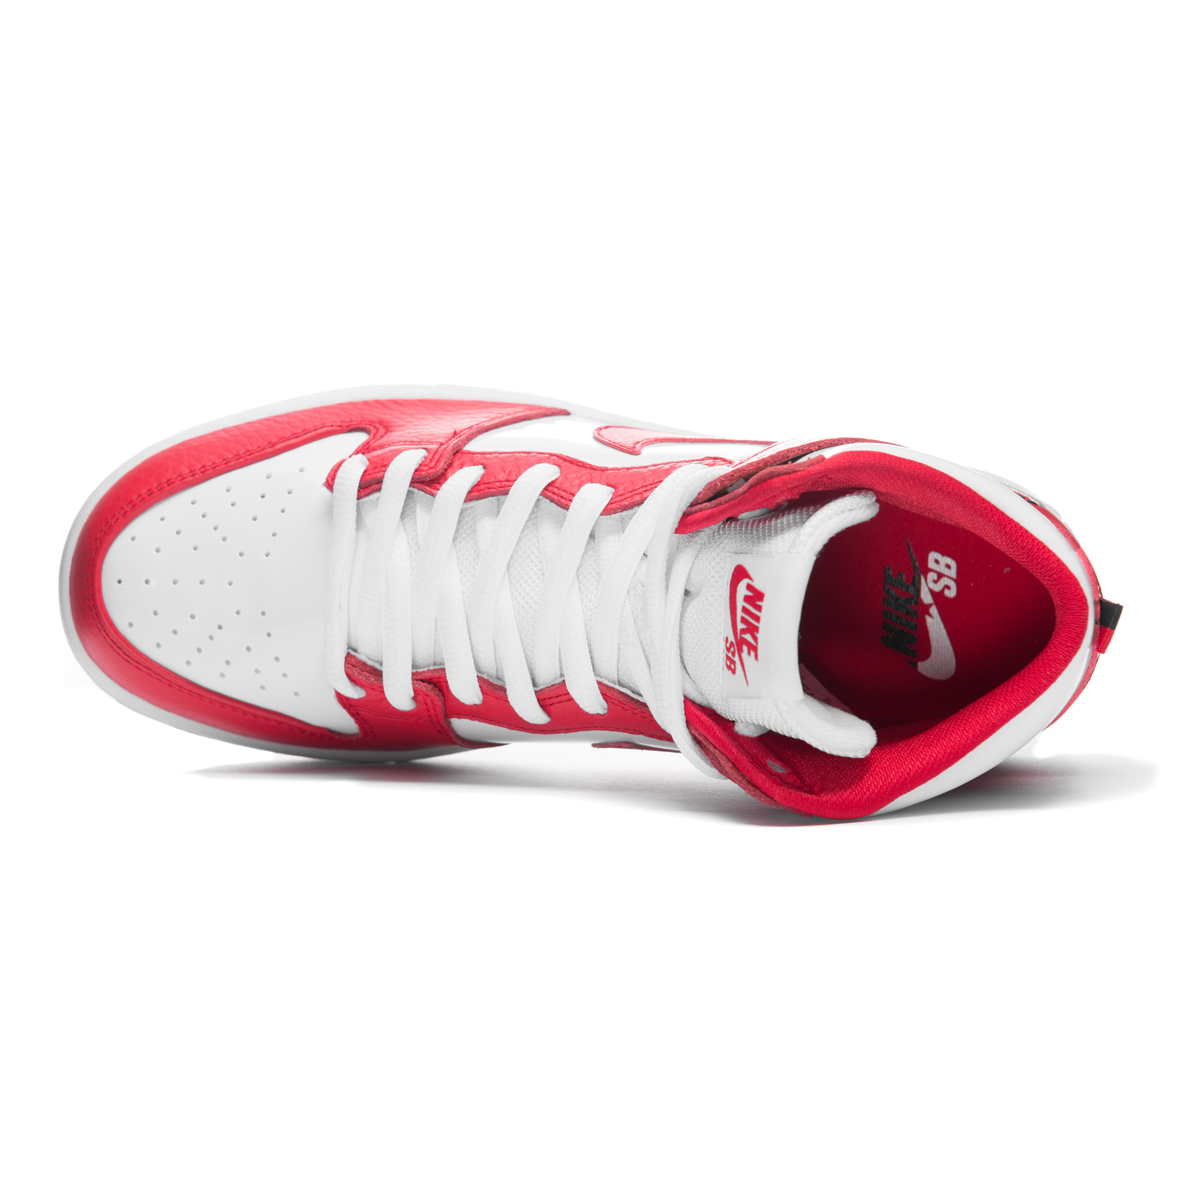 cheap for discount 67f77 4b9ab Buty Nike SB Zoom Dunk High Pro University Red / White ...